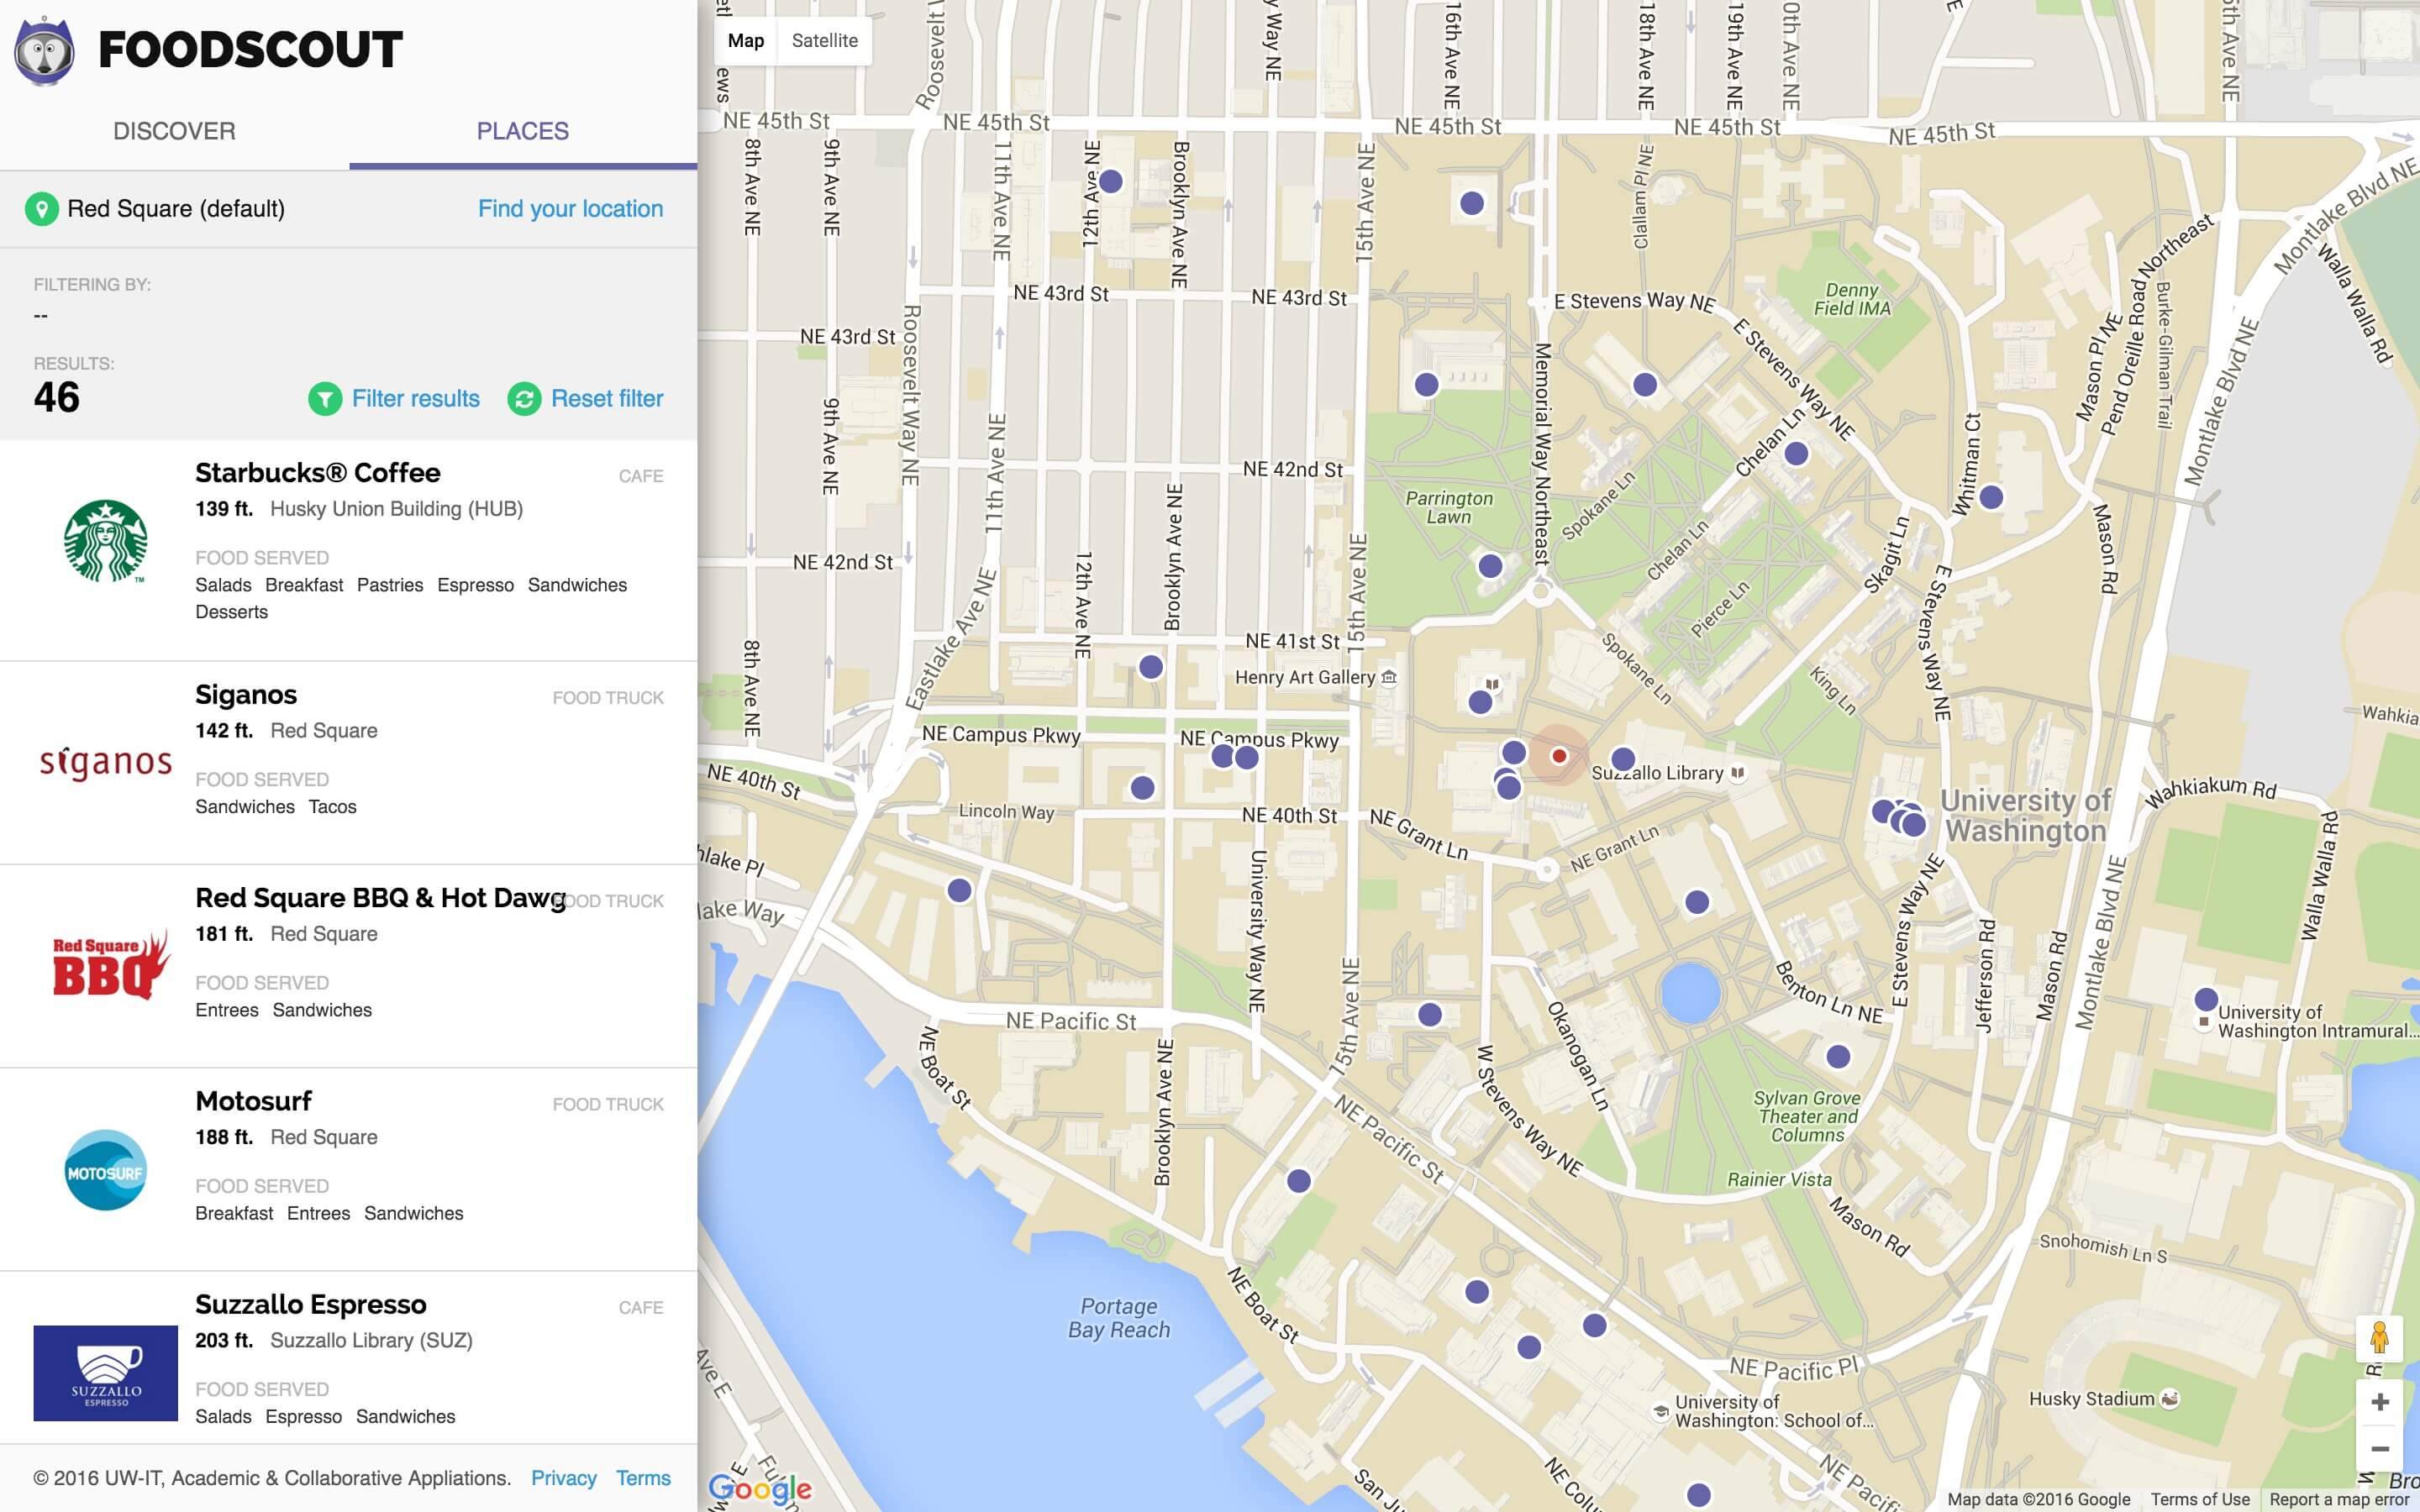 The places page that we used in our second study. This page failed to help users find specific places to eat near them